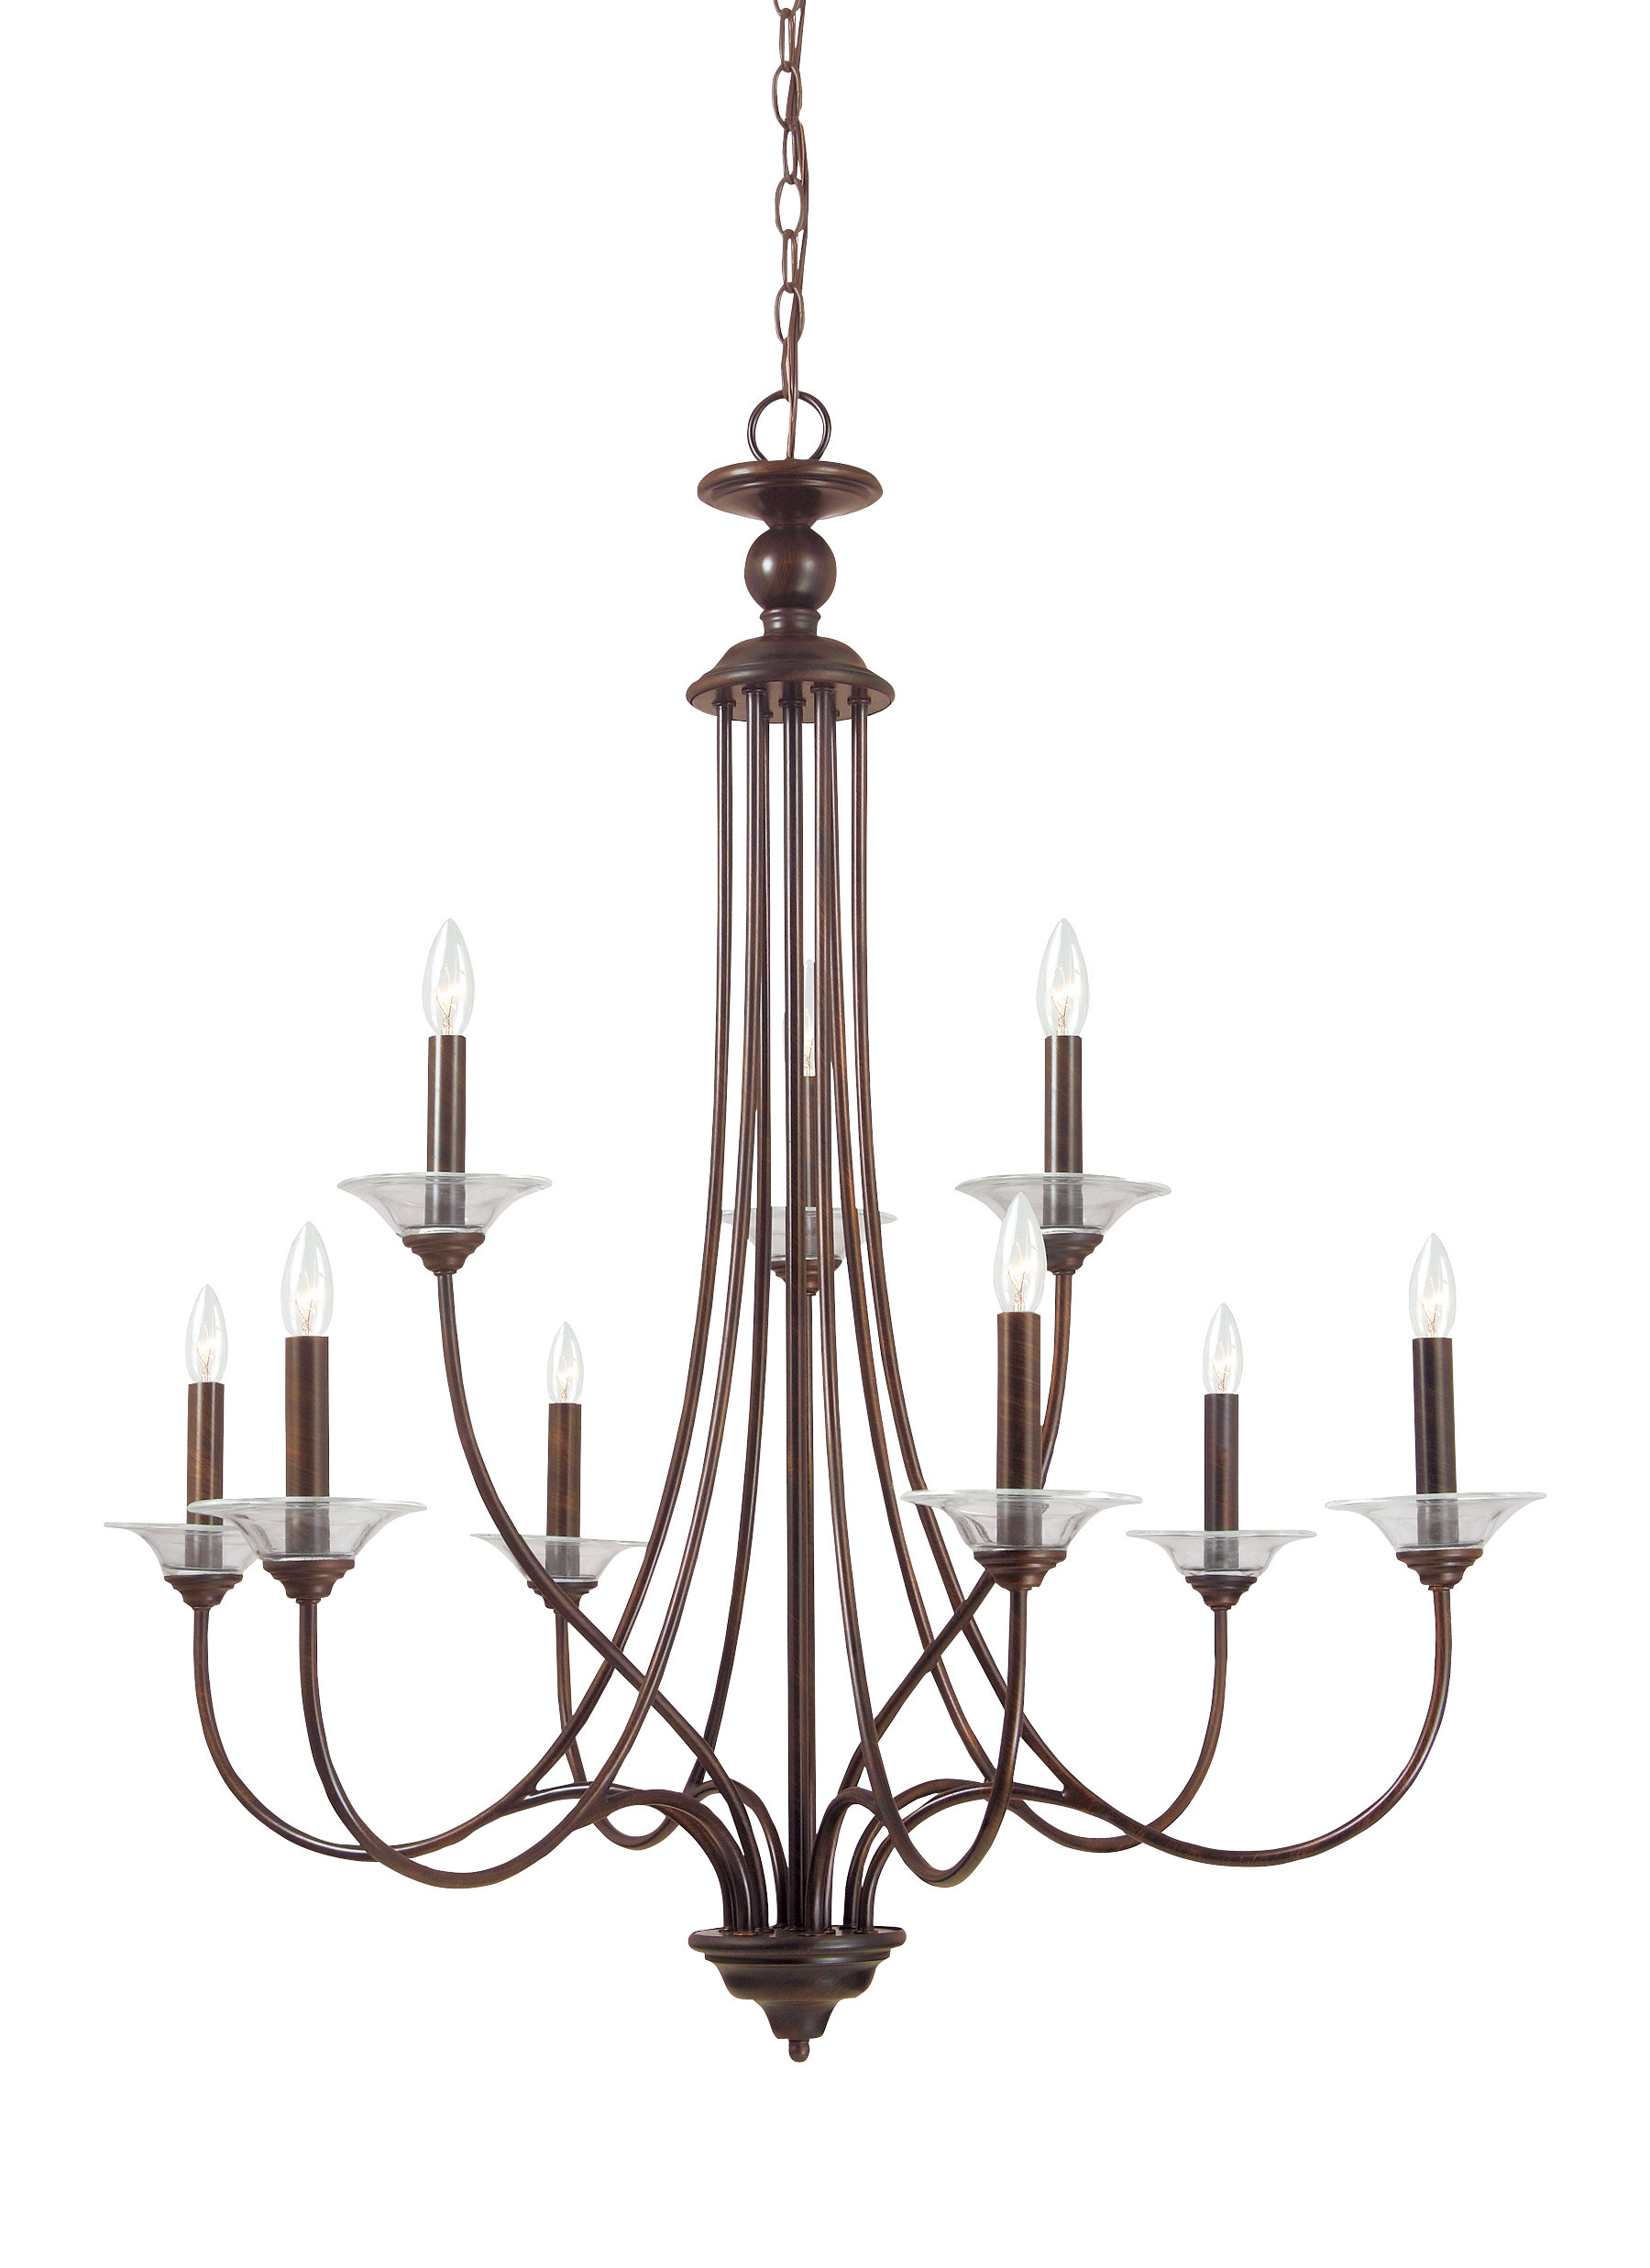 Barbro 9-Light Chandelier for Watford 9-Light Candle Style Chandeliers (Image 5 of 30)